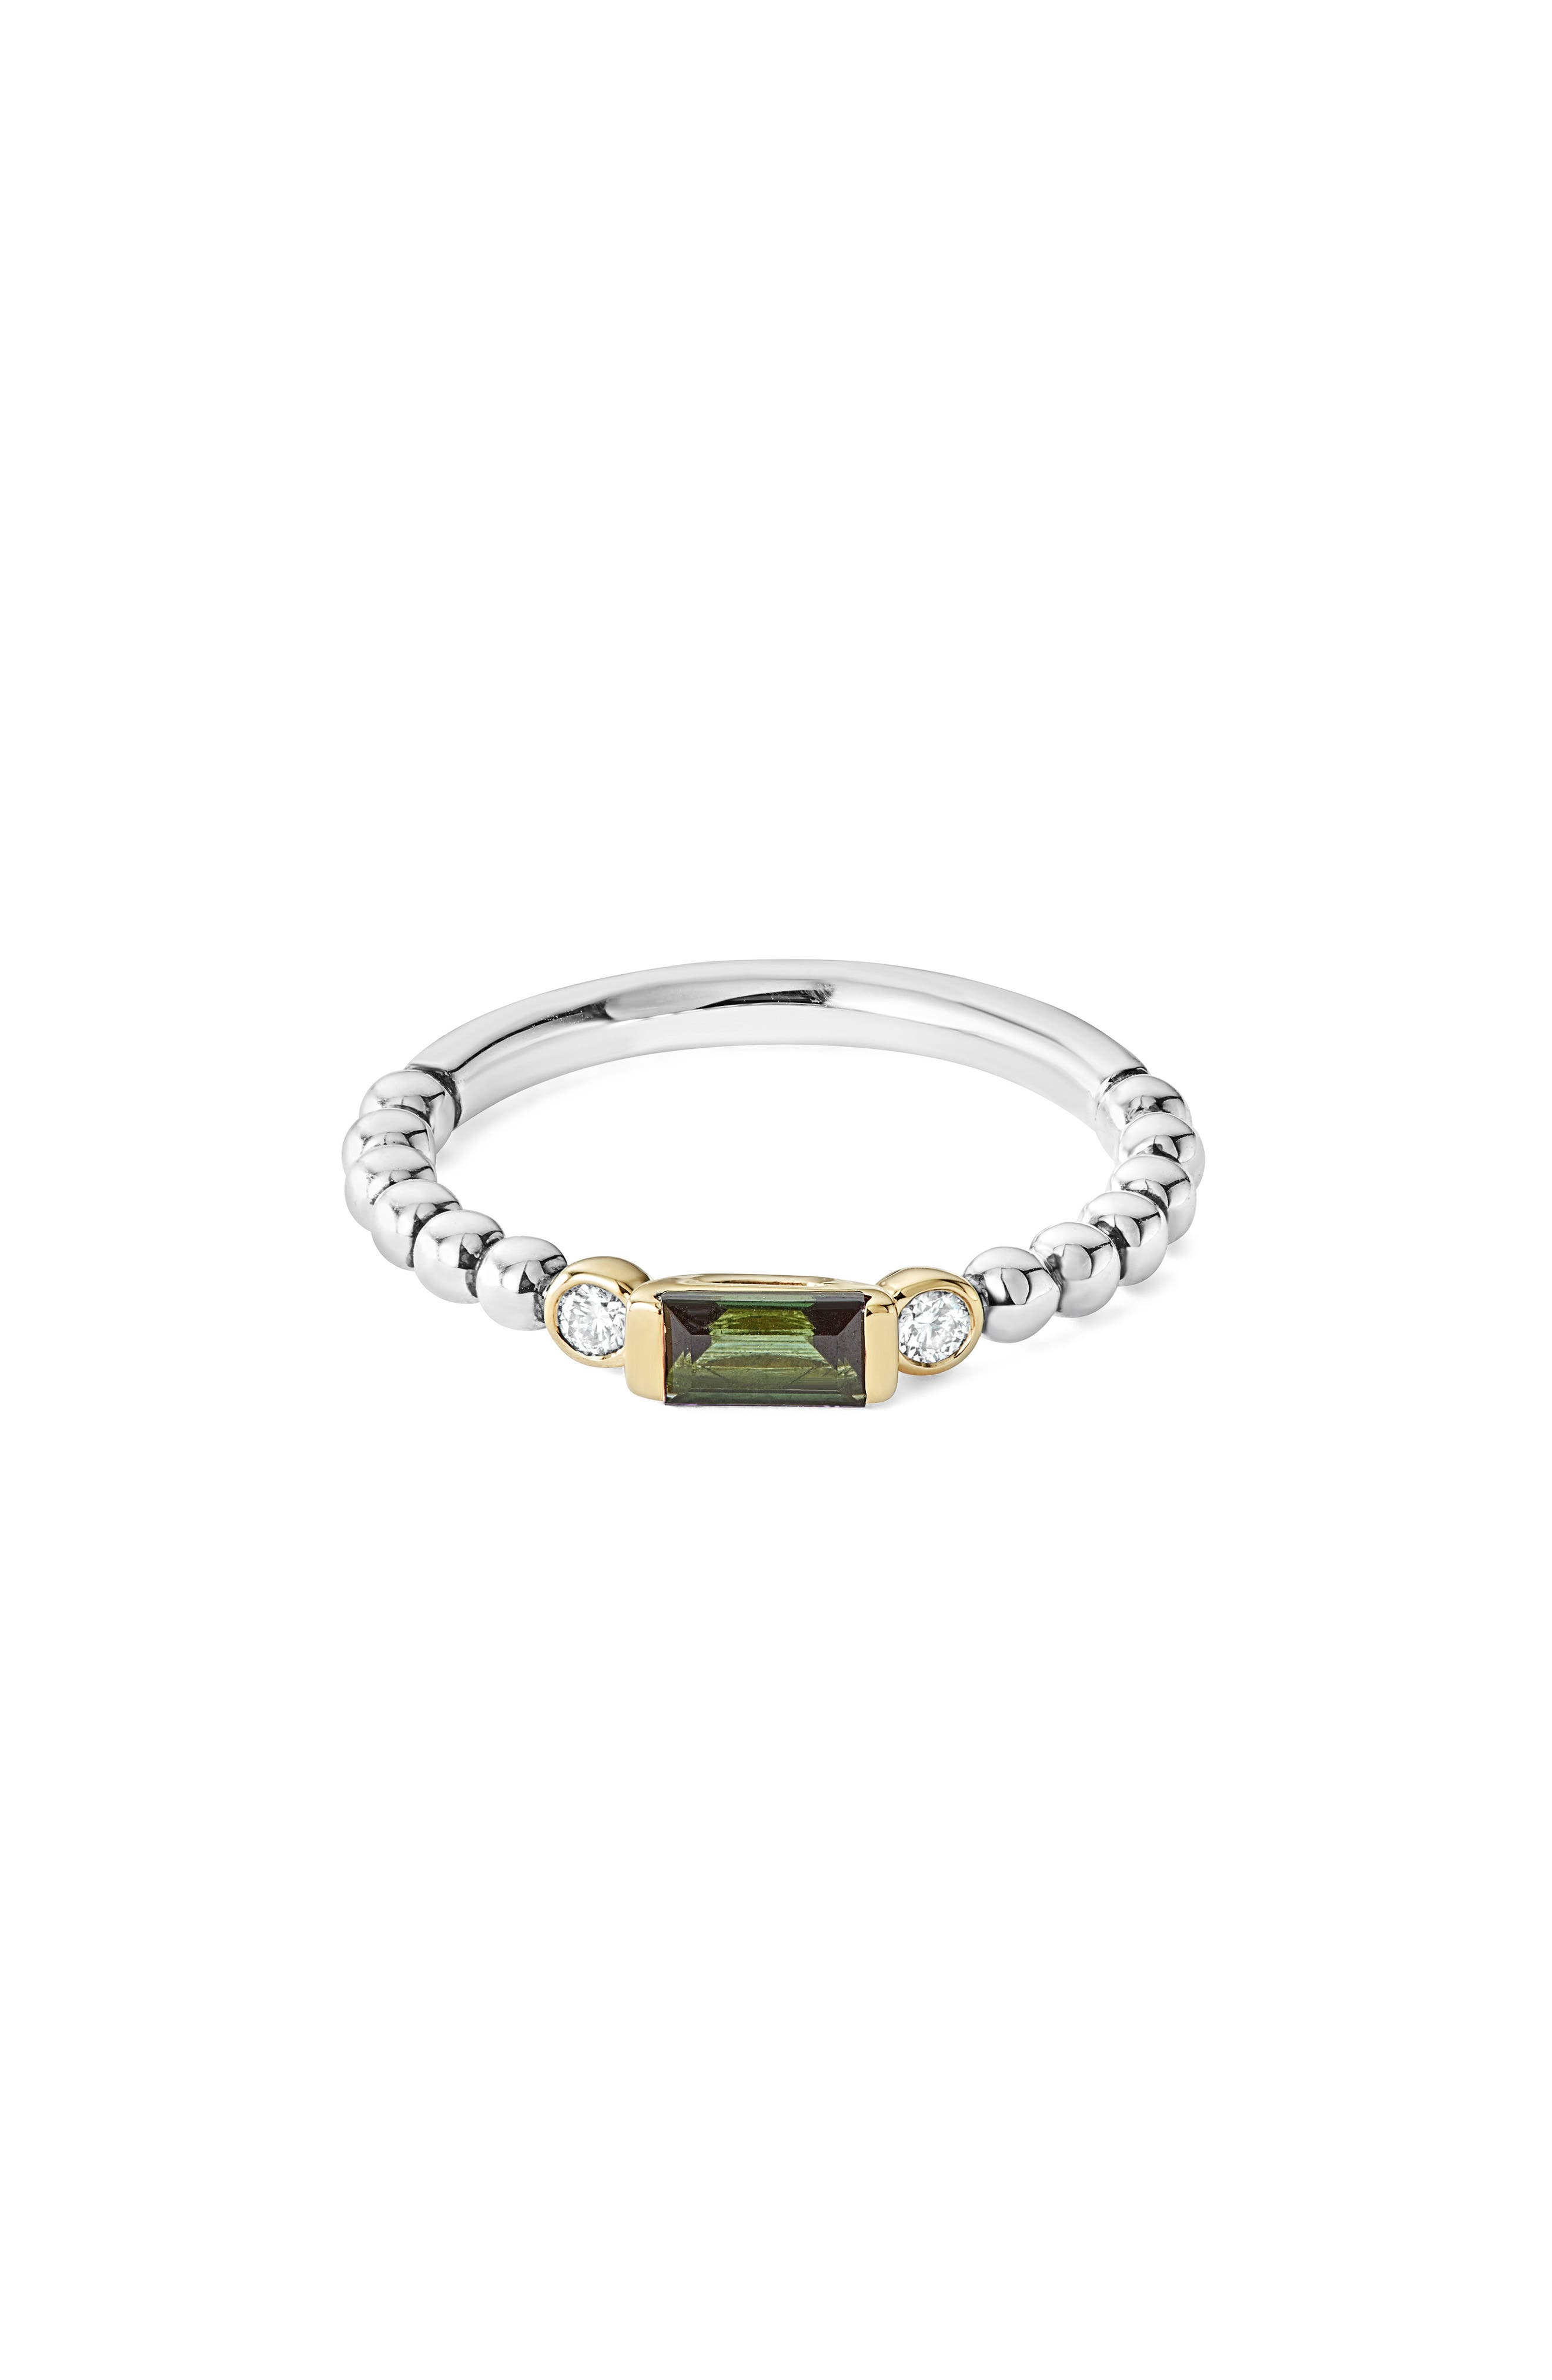 Gemstone Baguette and Diamond Beaded Band Ring,                             Main thumbnail 1, color,                             SILVER/ 18K GOLD/ TOURMALINE